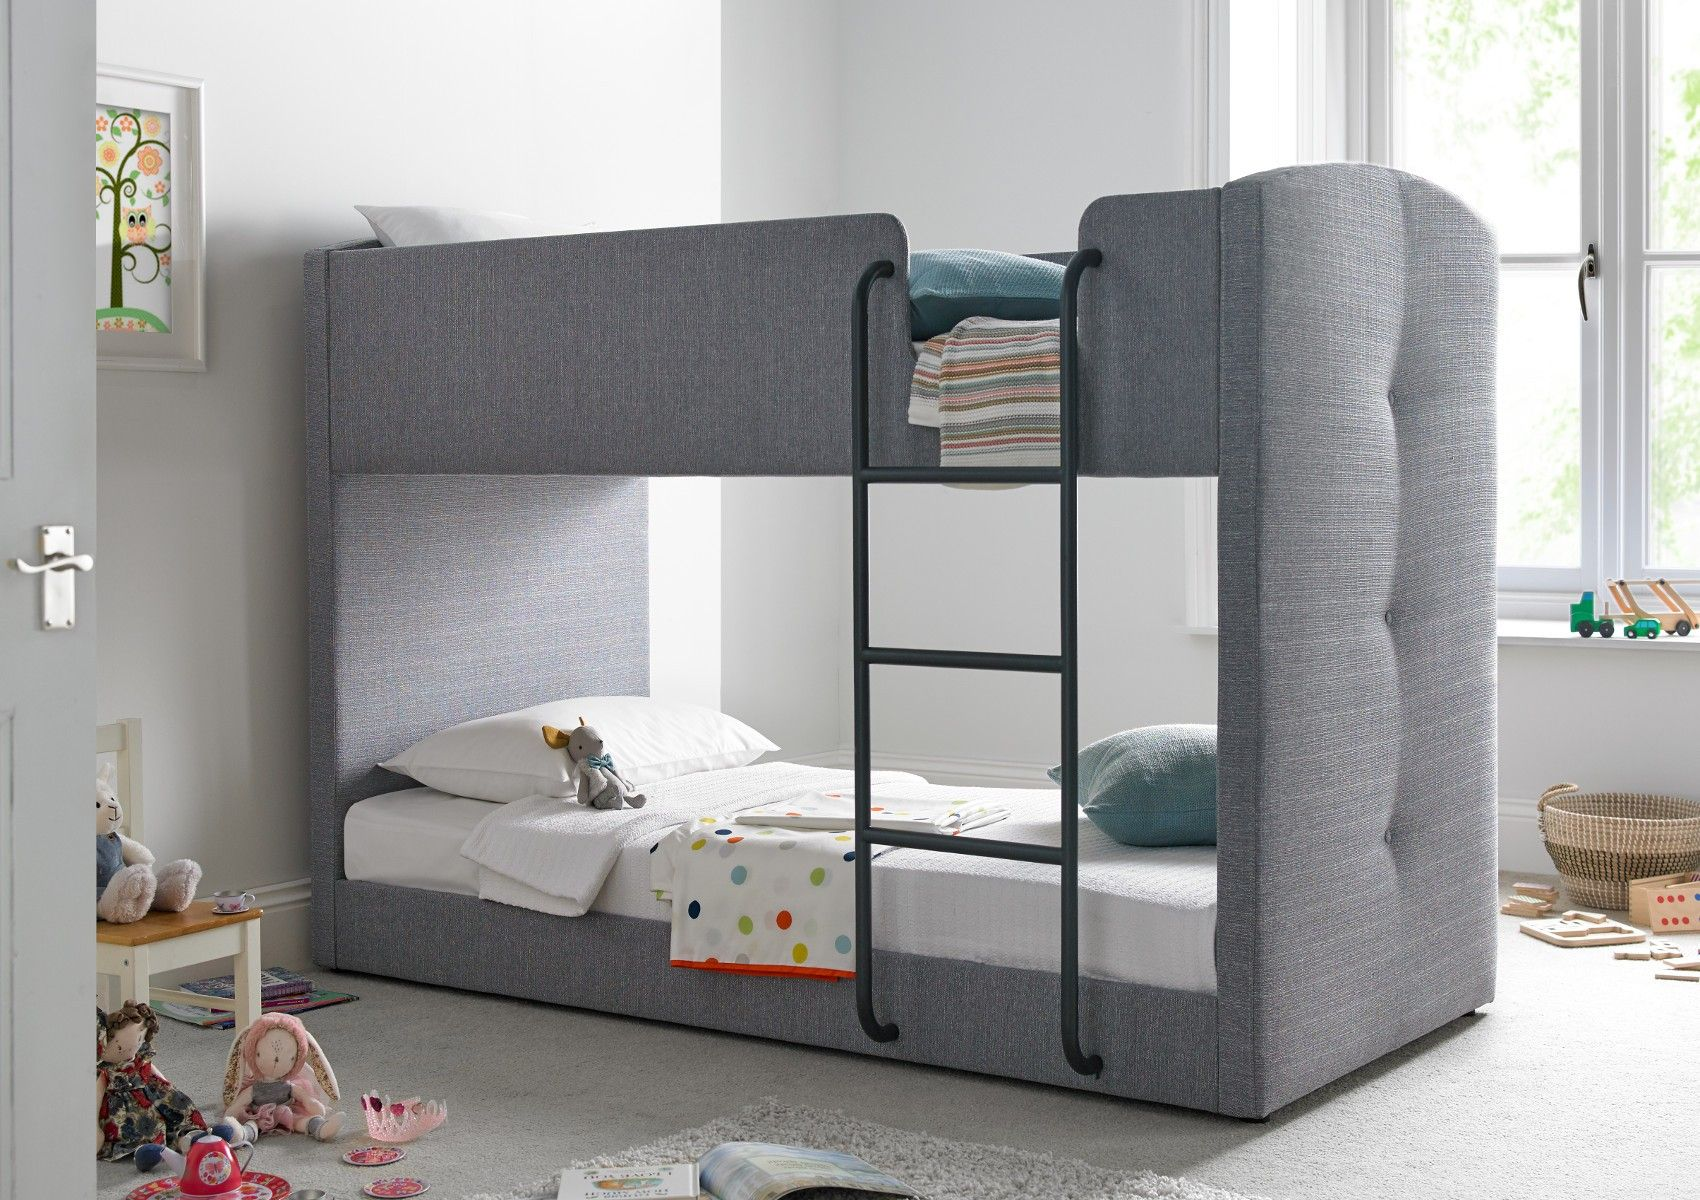 Exclusively designed for Time 4 Sleep the Kaydian Bunk bed